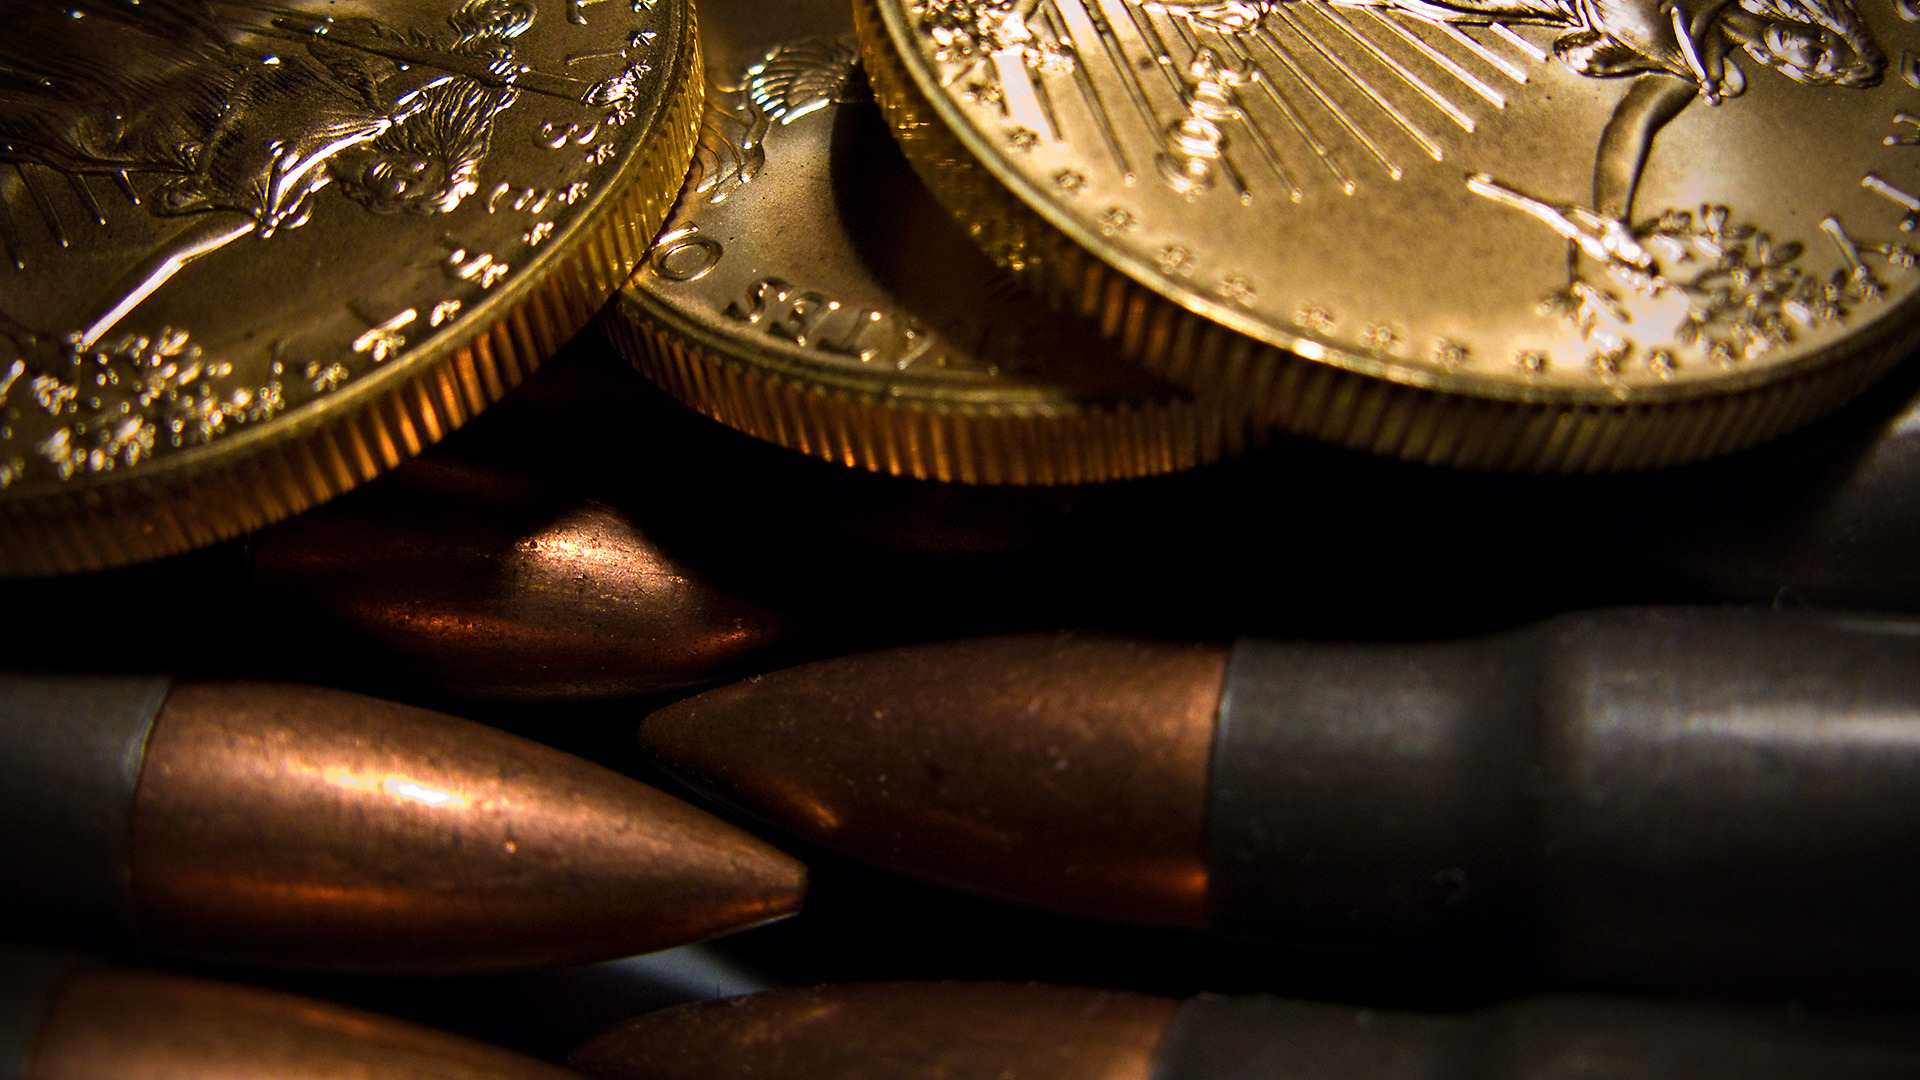 Bullet Image wallpapers (44 Wallpapers) – HD Wallpapers